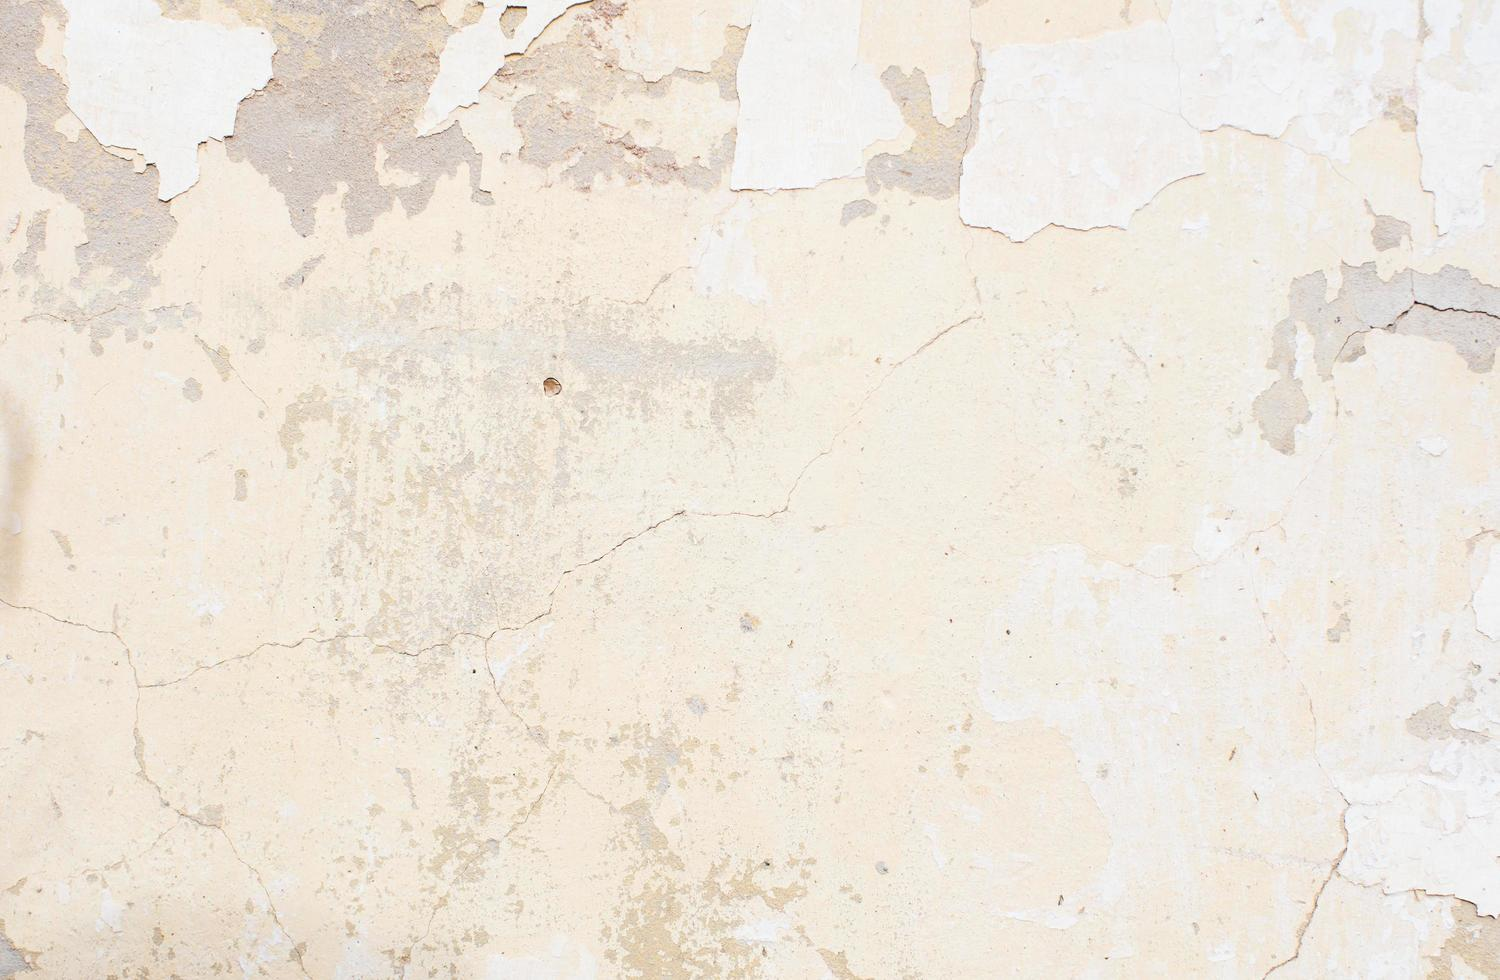 Chipped paint grunge wall texture photo